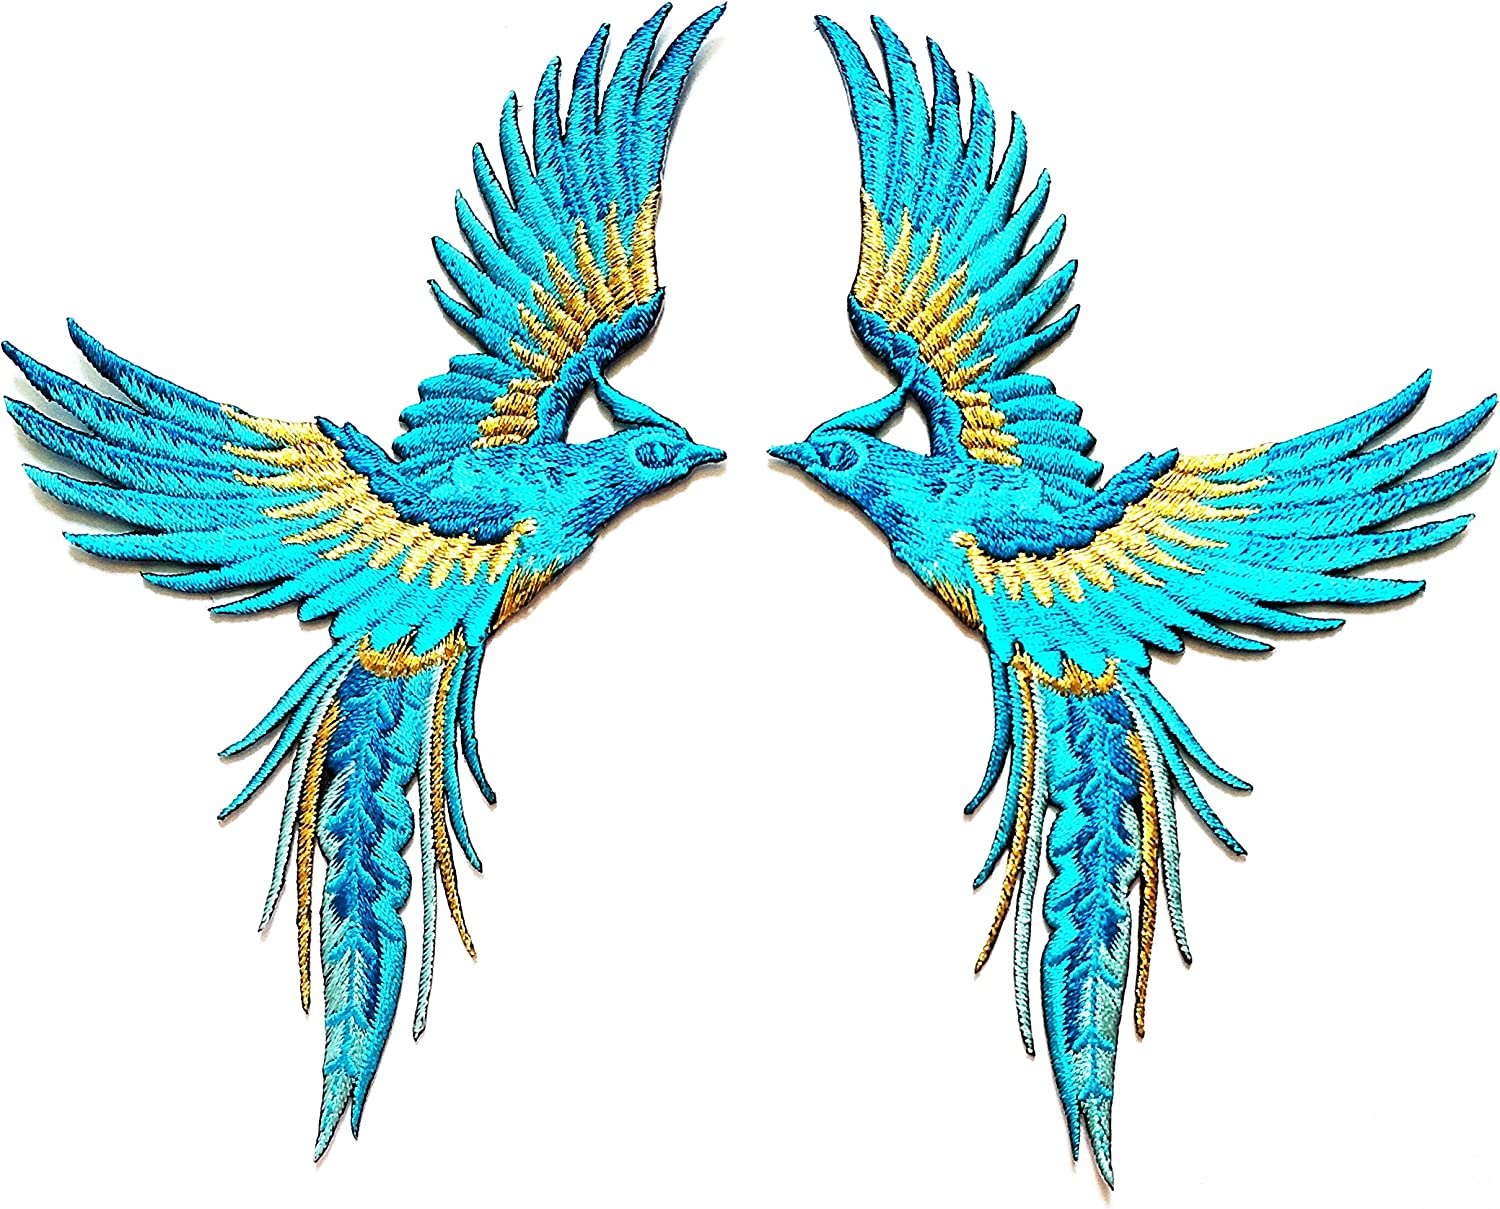 Nipitshop Patches Phoenix Phenix Birds Sky Blue Sapphire Gold Embroidered Appliques Iron-on Patches for Clothes Backpacks T-Shirt Jeans Skirt Vests Scarf Hat Bag